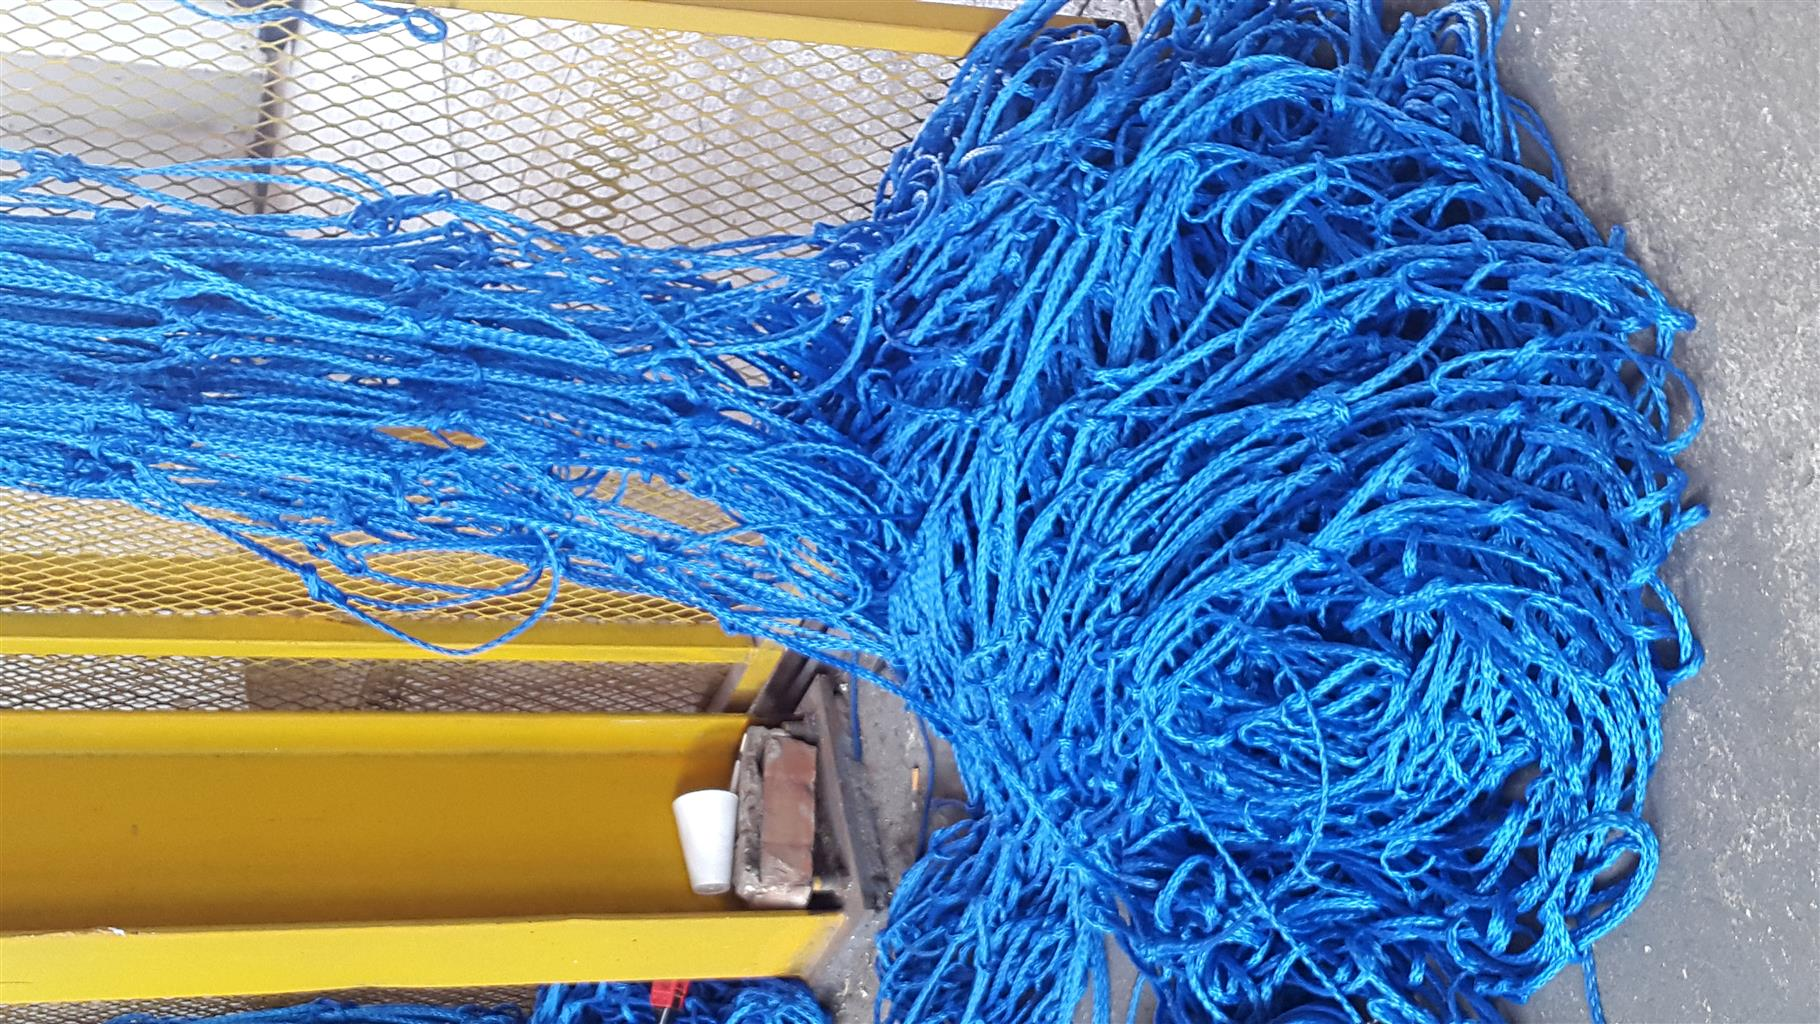 TOP QUALITY CARGO NETS FOR SALE